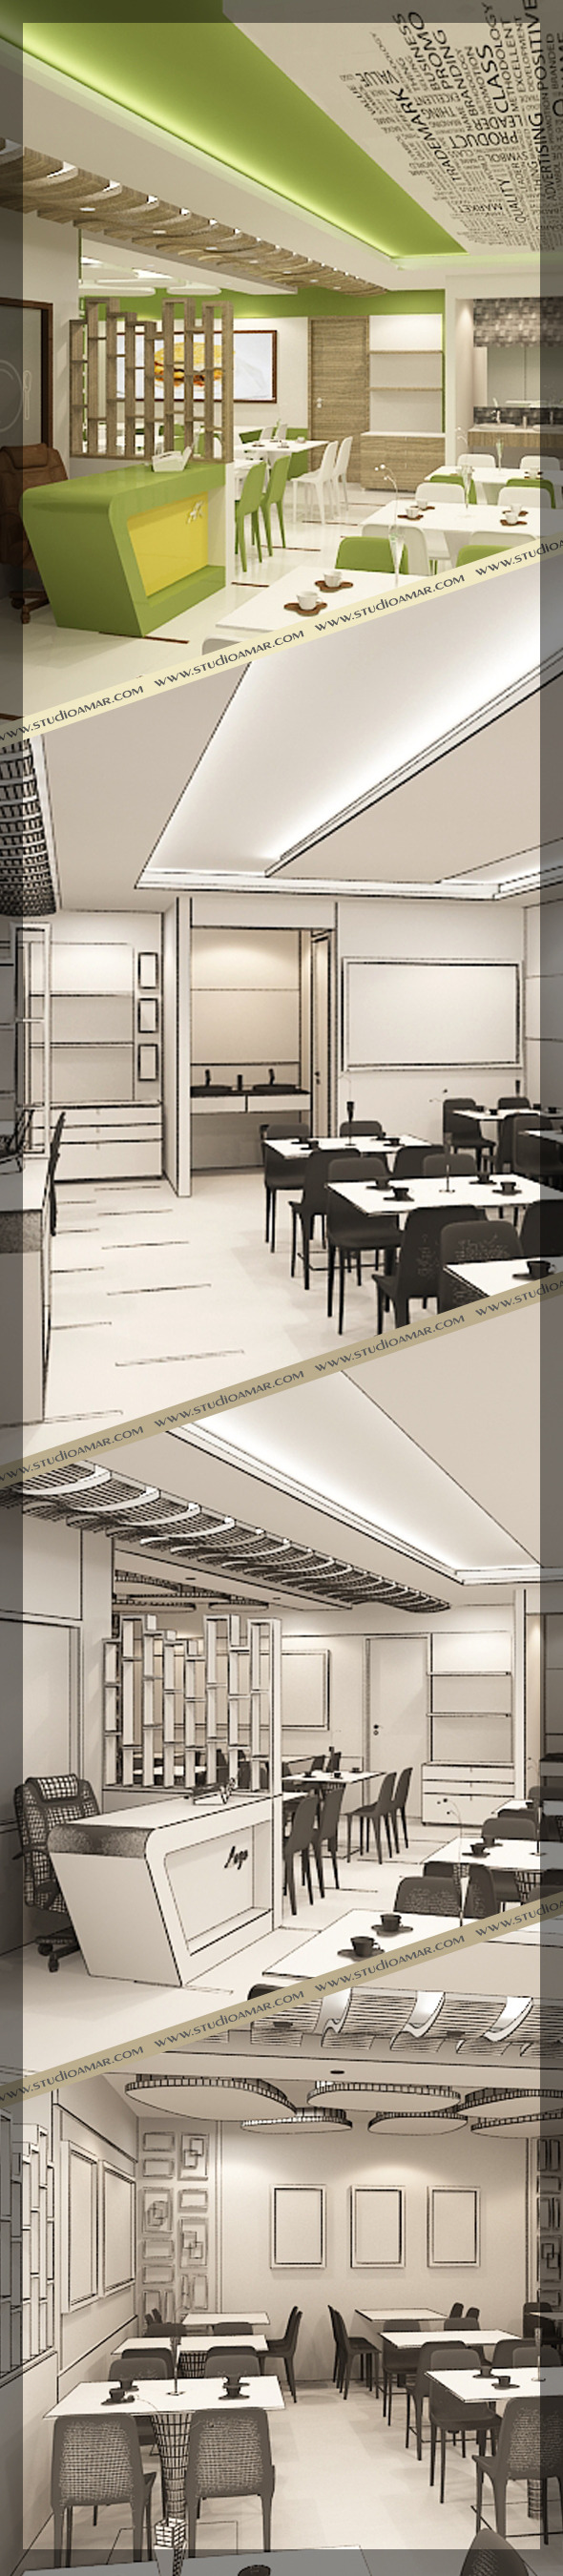 Restaurant 3d interior design 120 - 3DOcean Item for Sale